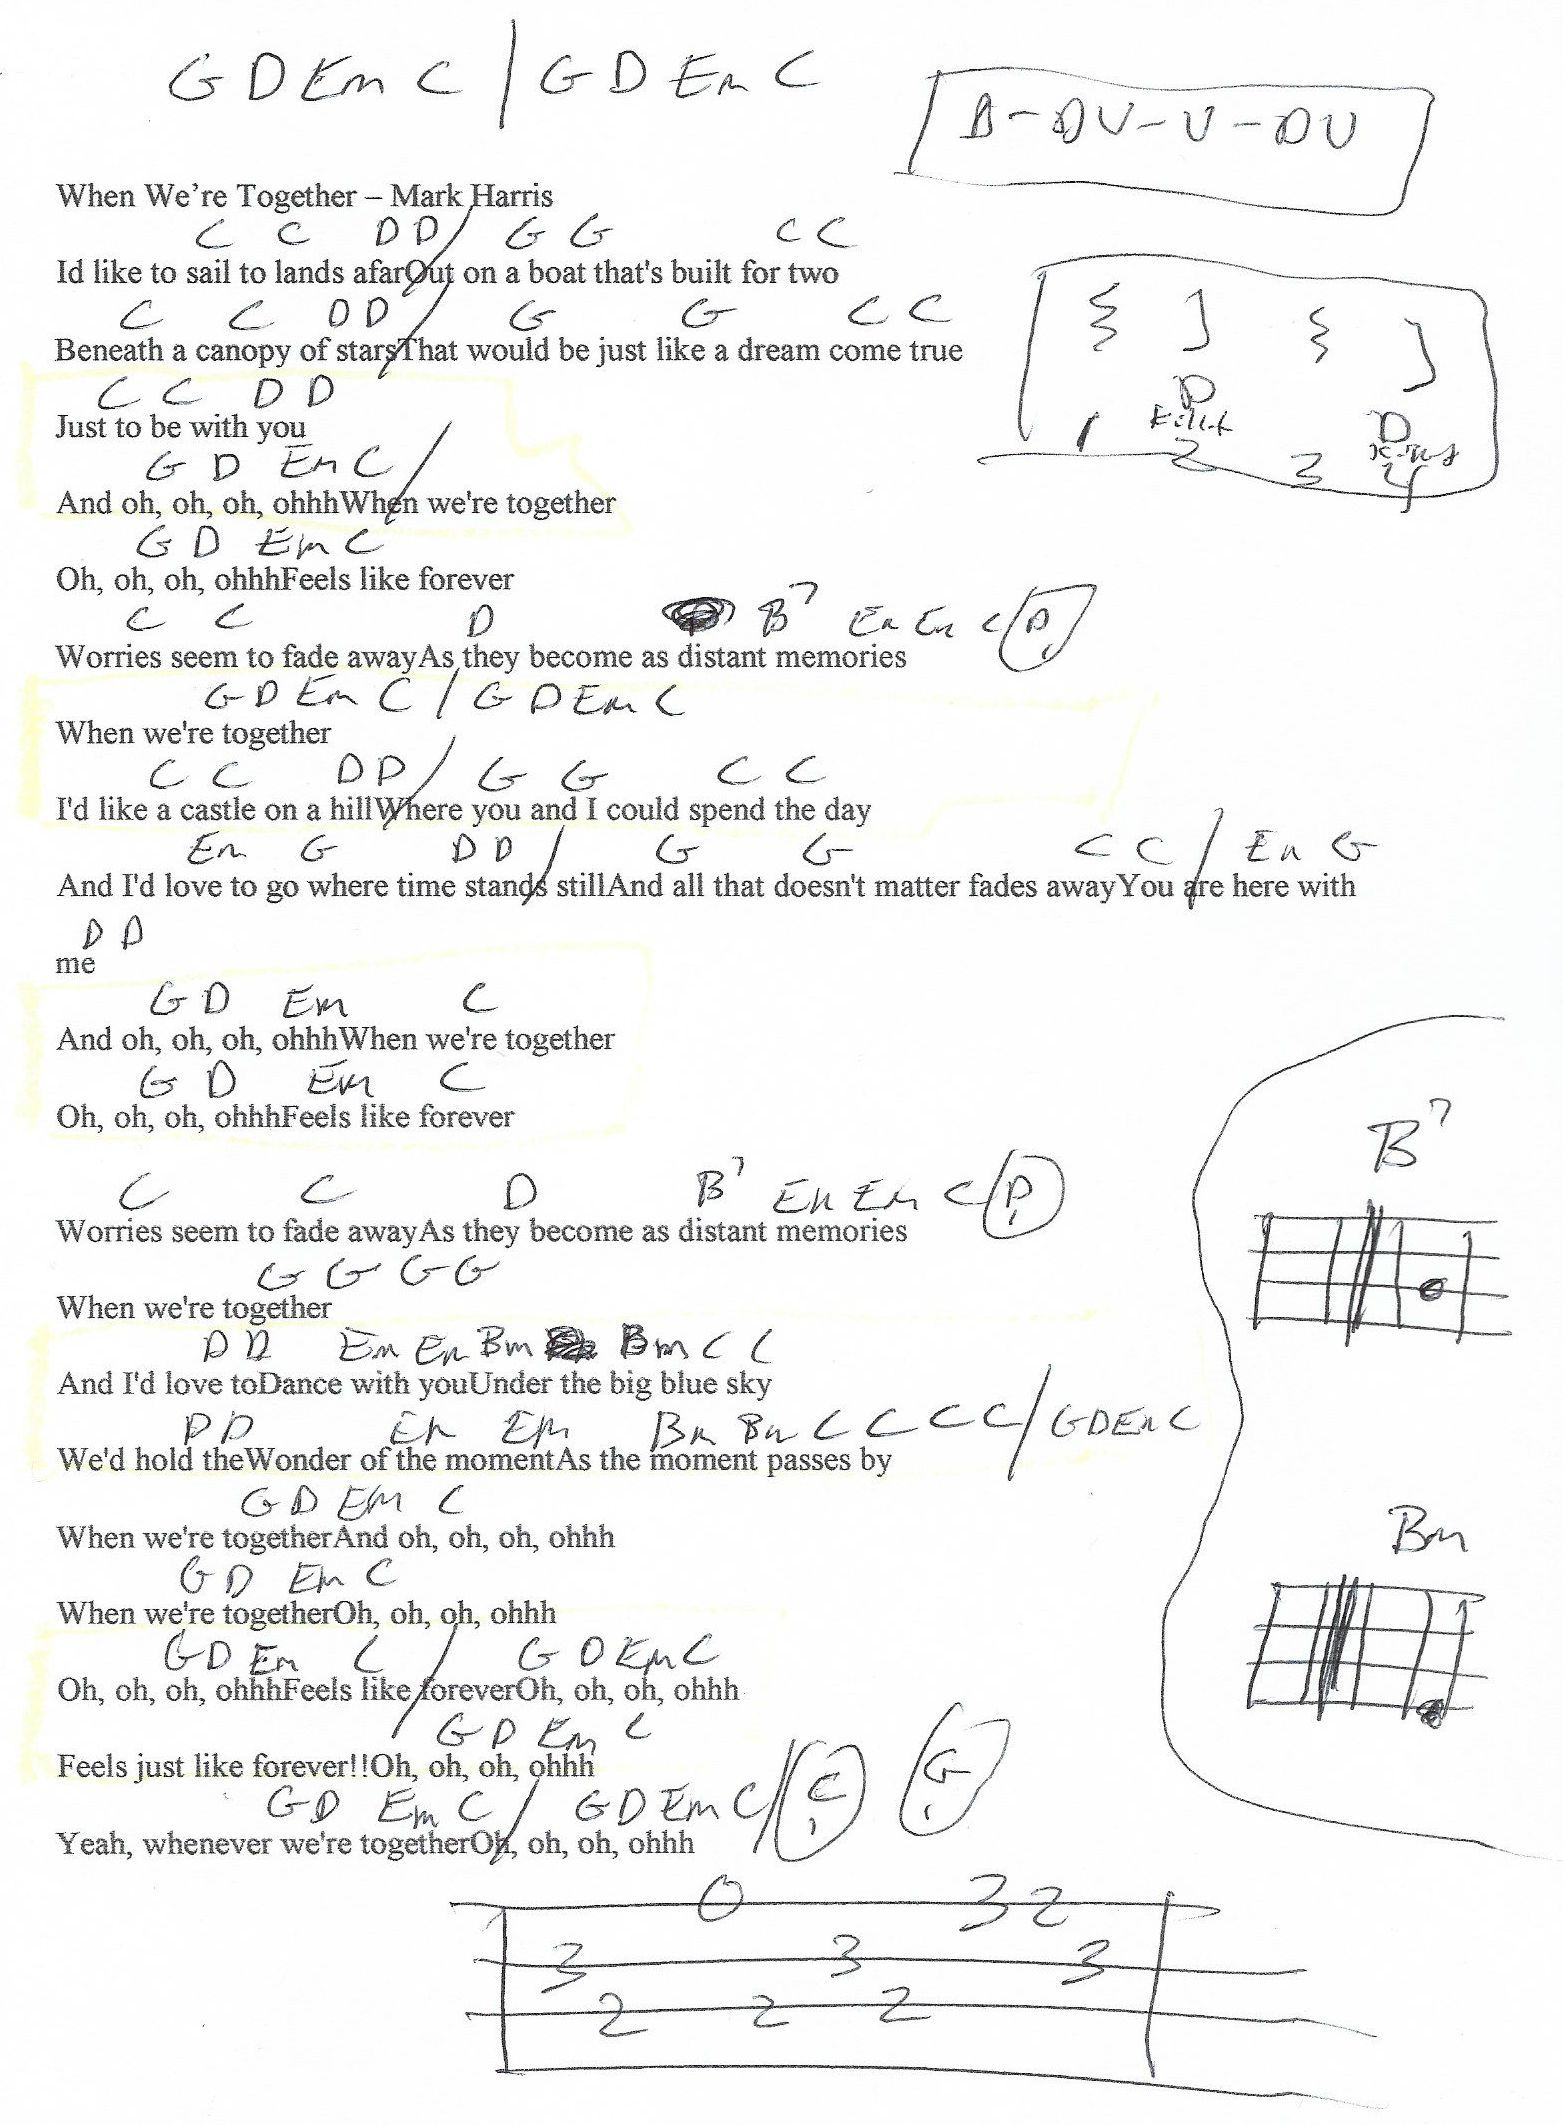 When We're Together (Mark Harris) Guitar Chord Chart in